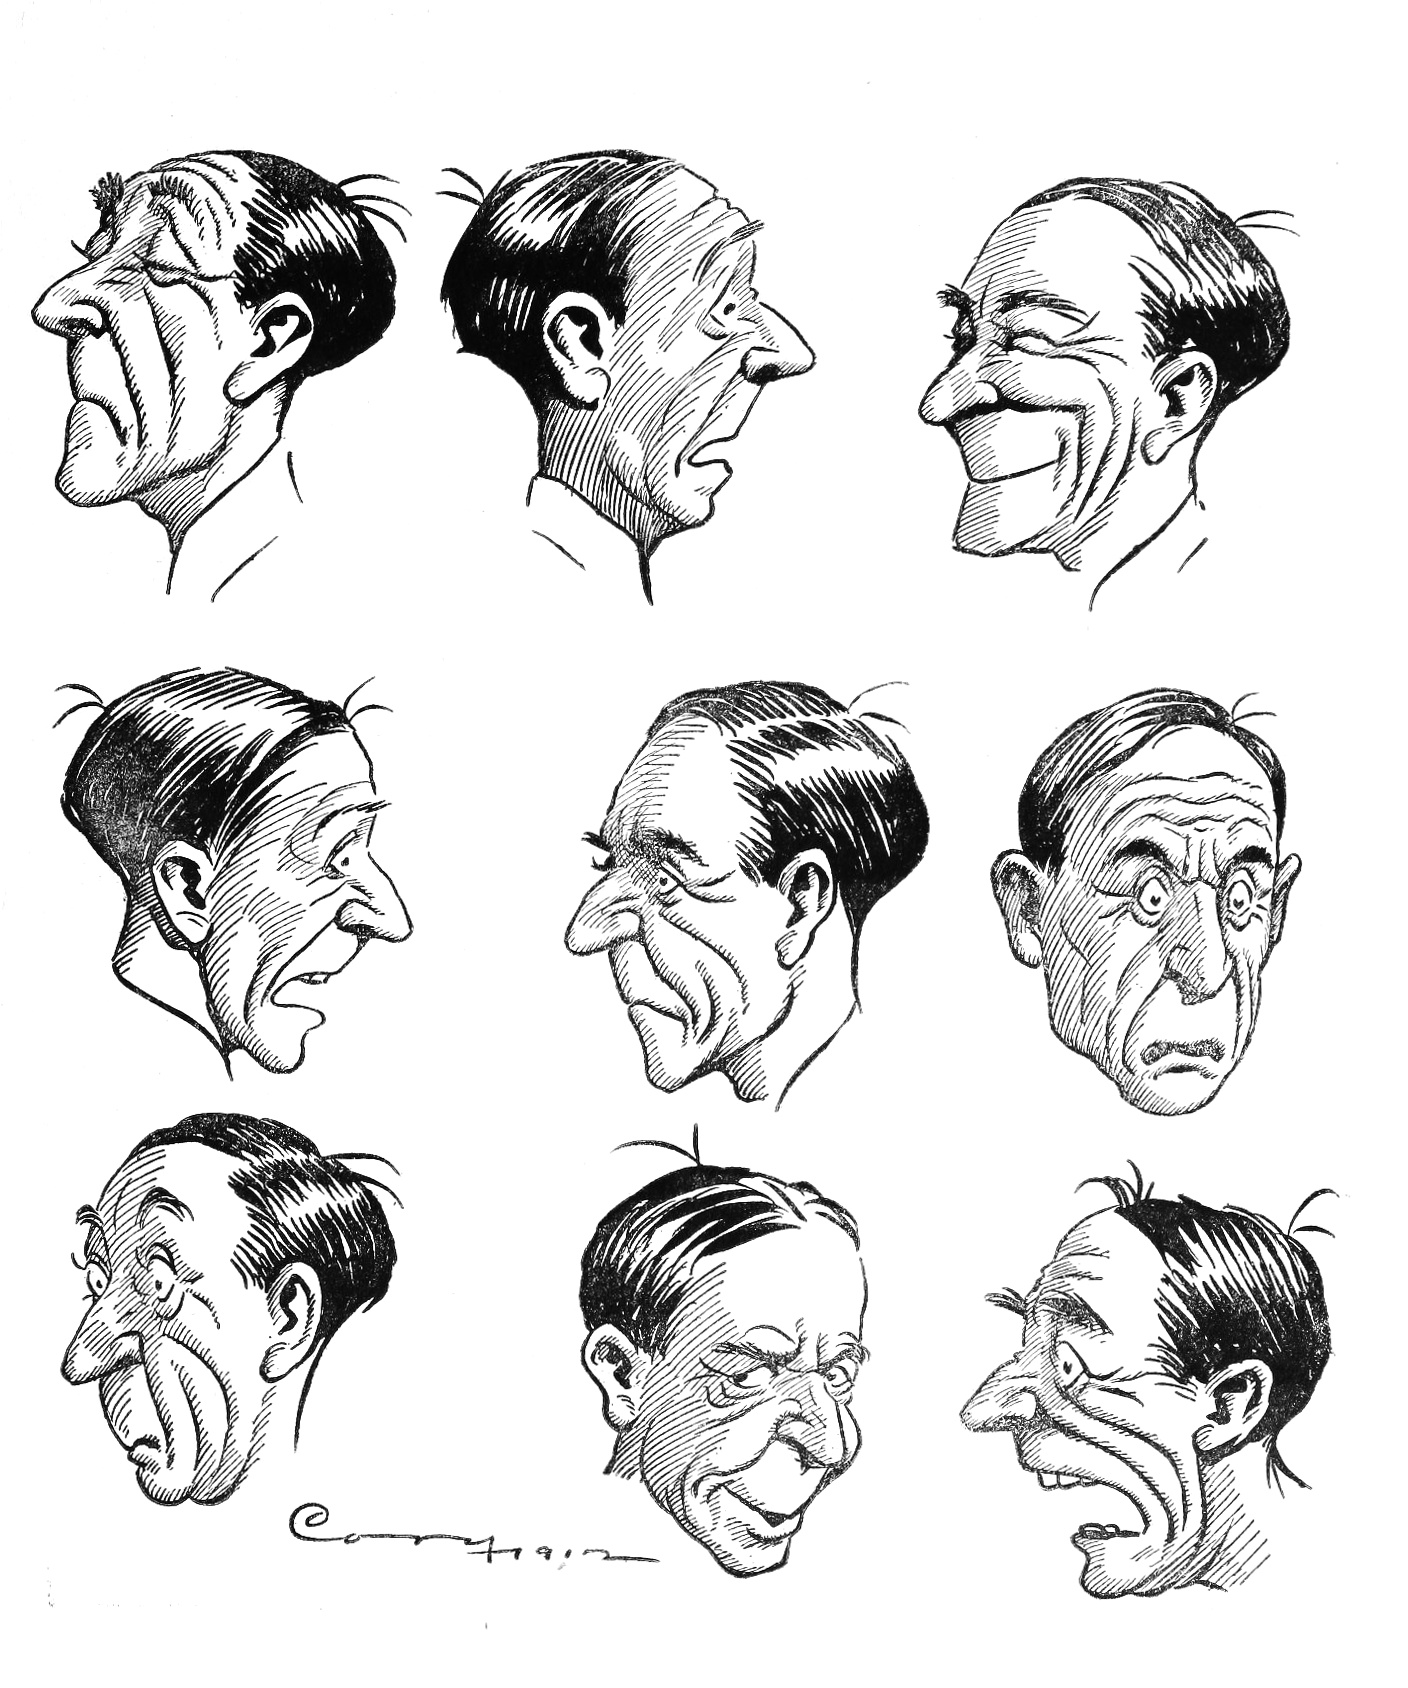 File:Facial expressions - The Cartoonist's Art.jpg - Wikimedia Commons